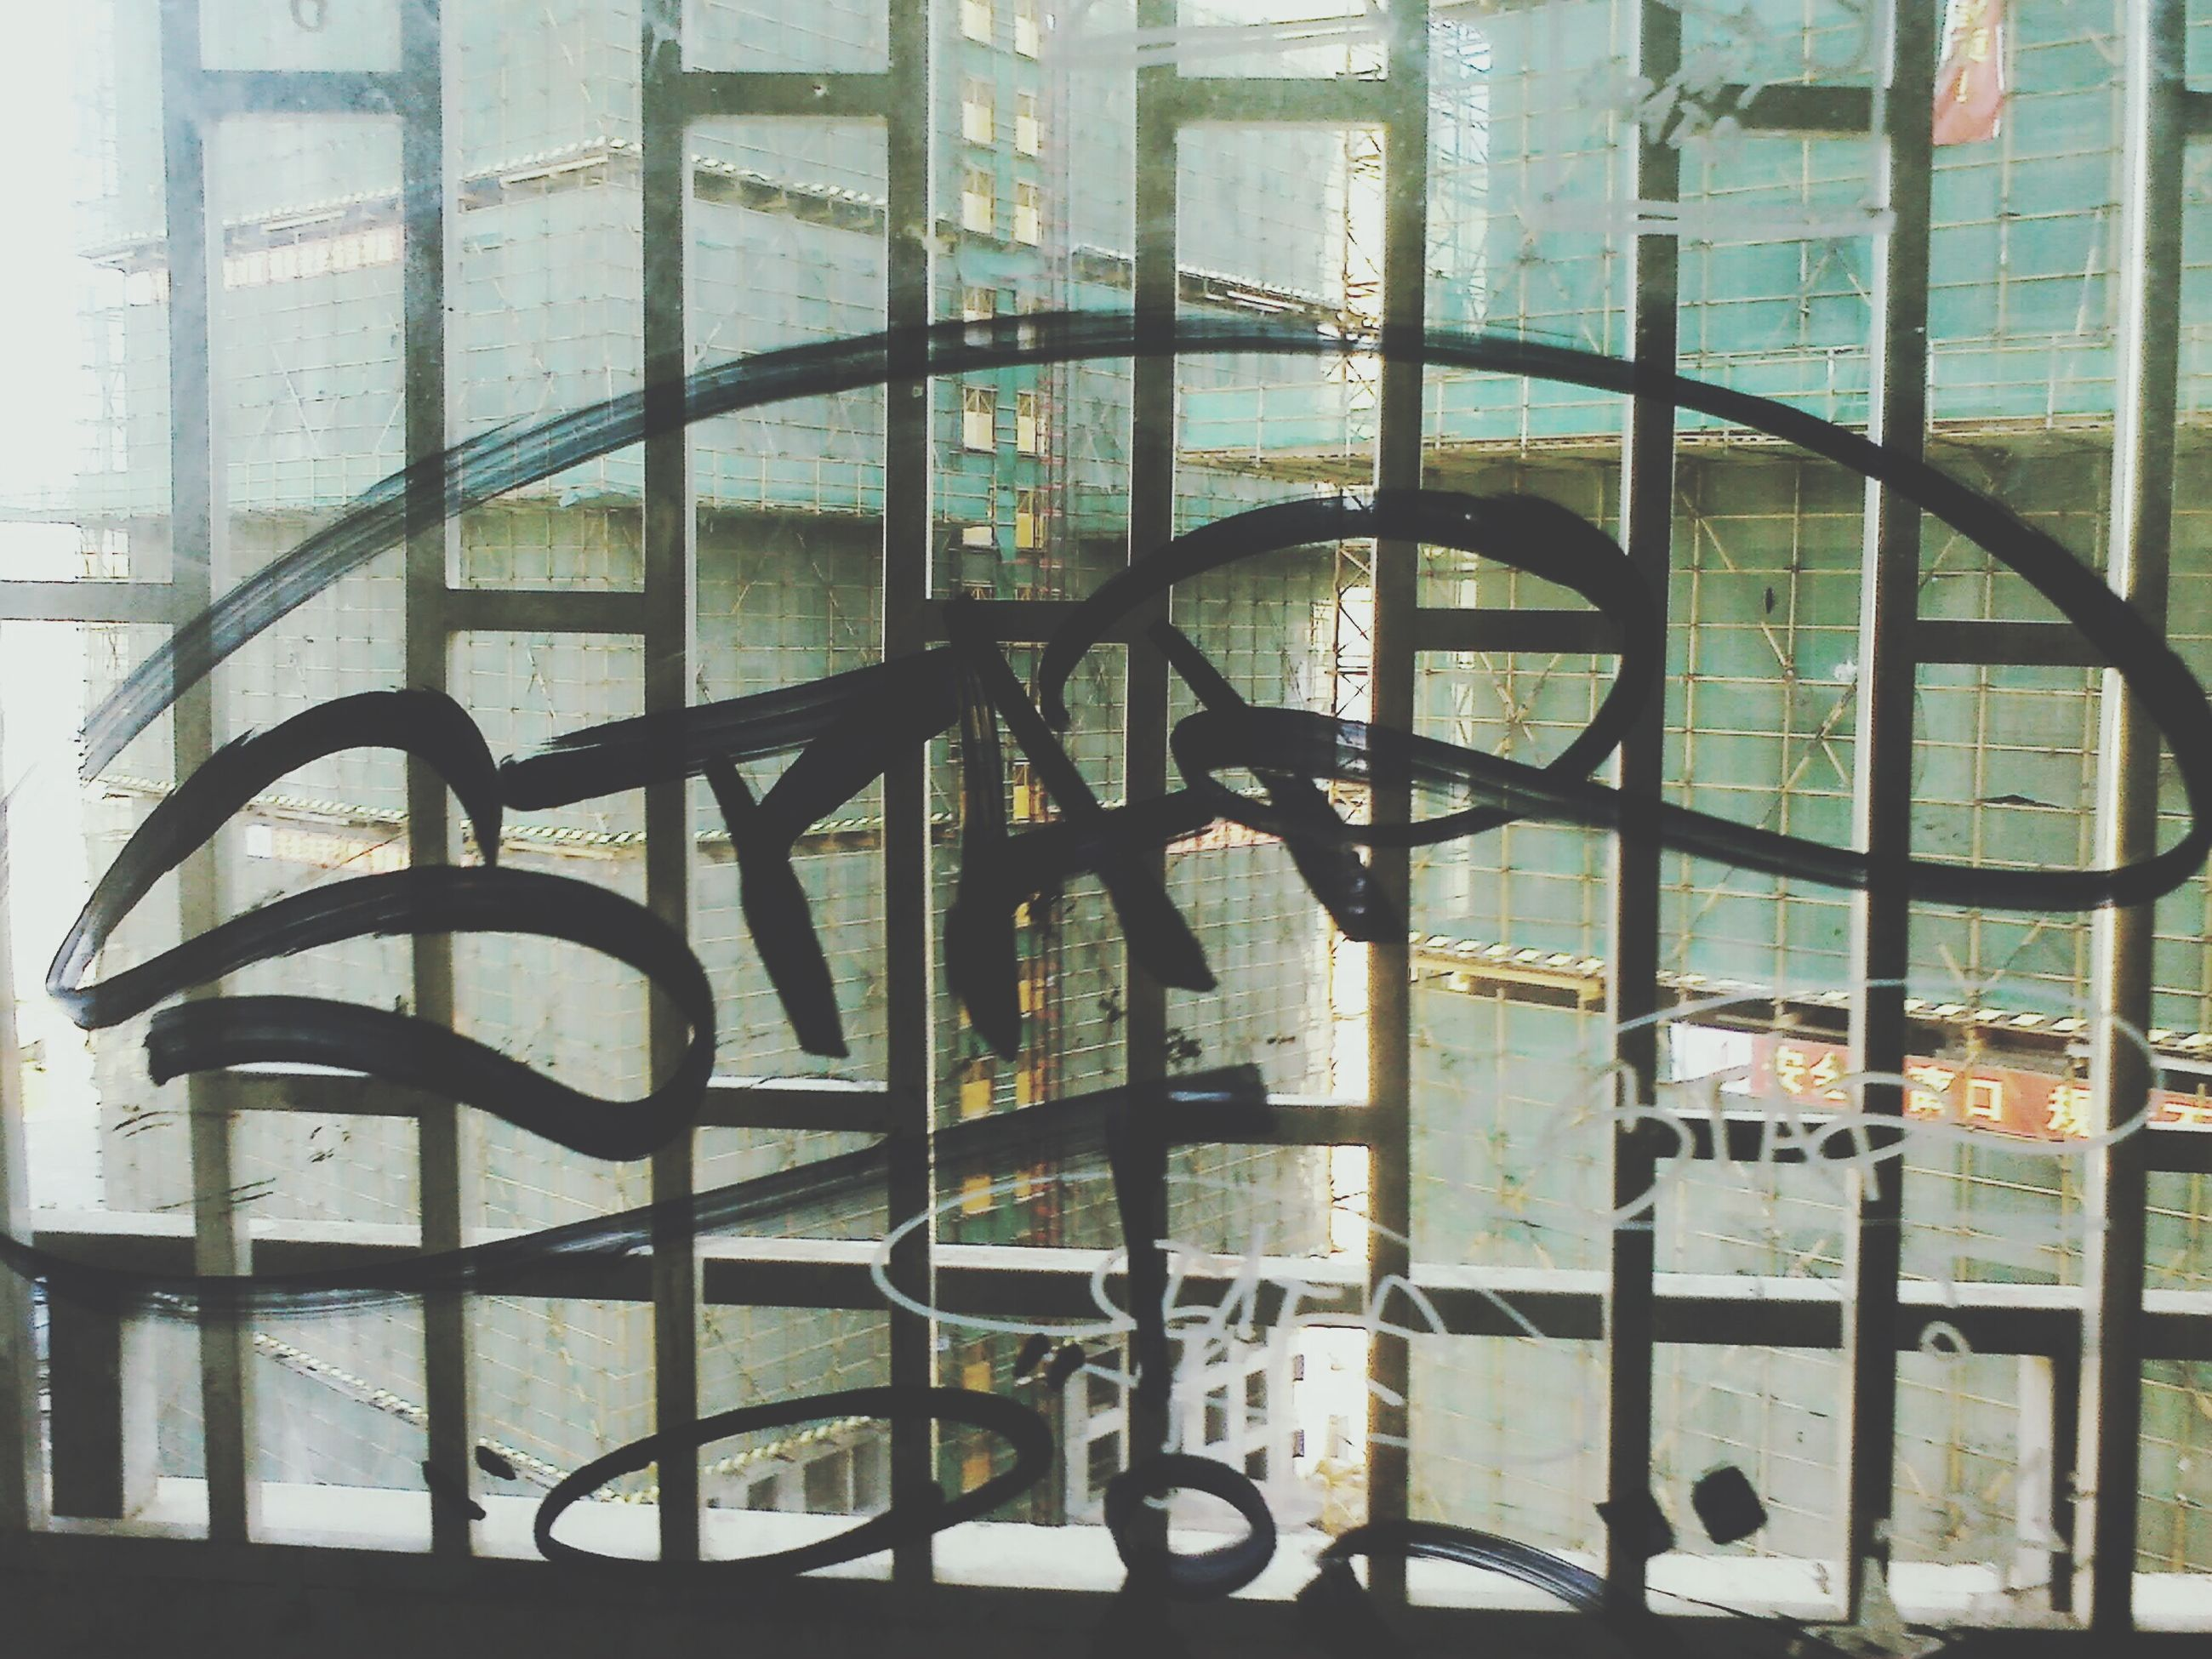 window, architecture, built structure, glass - material, indoors, building exterior, transparent, building, reflection, day, metal, city, glass, no people, residential structure, pattern, residential building, wall - building feature, house, metal grate